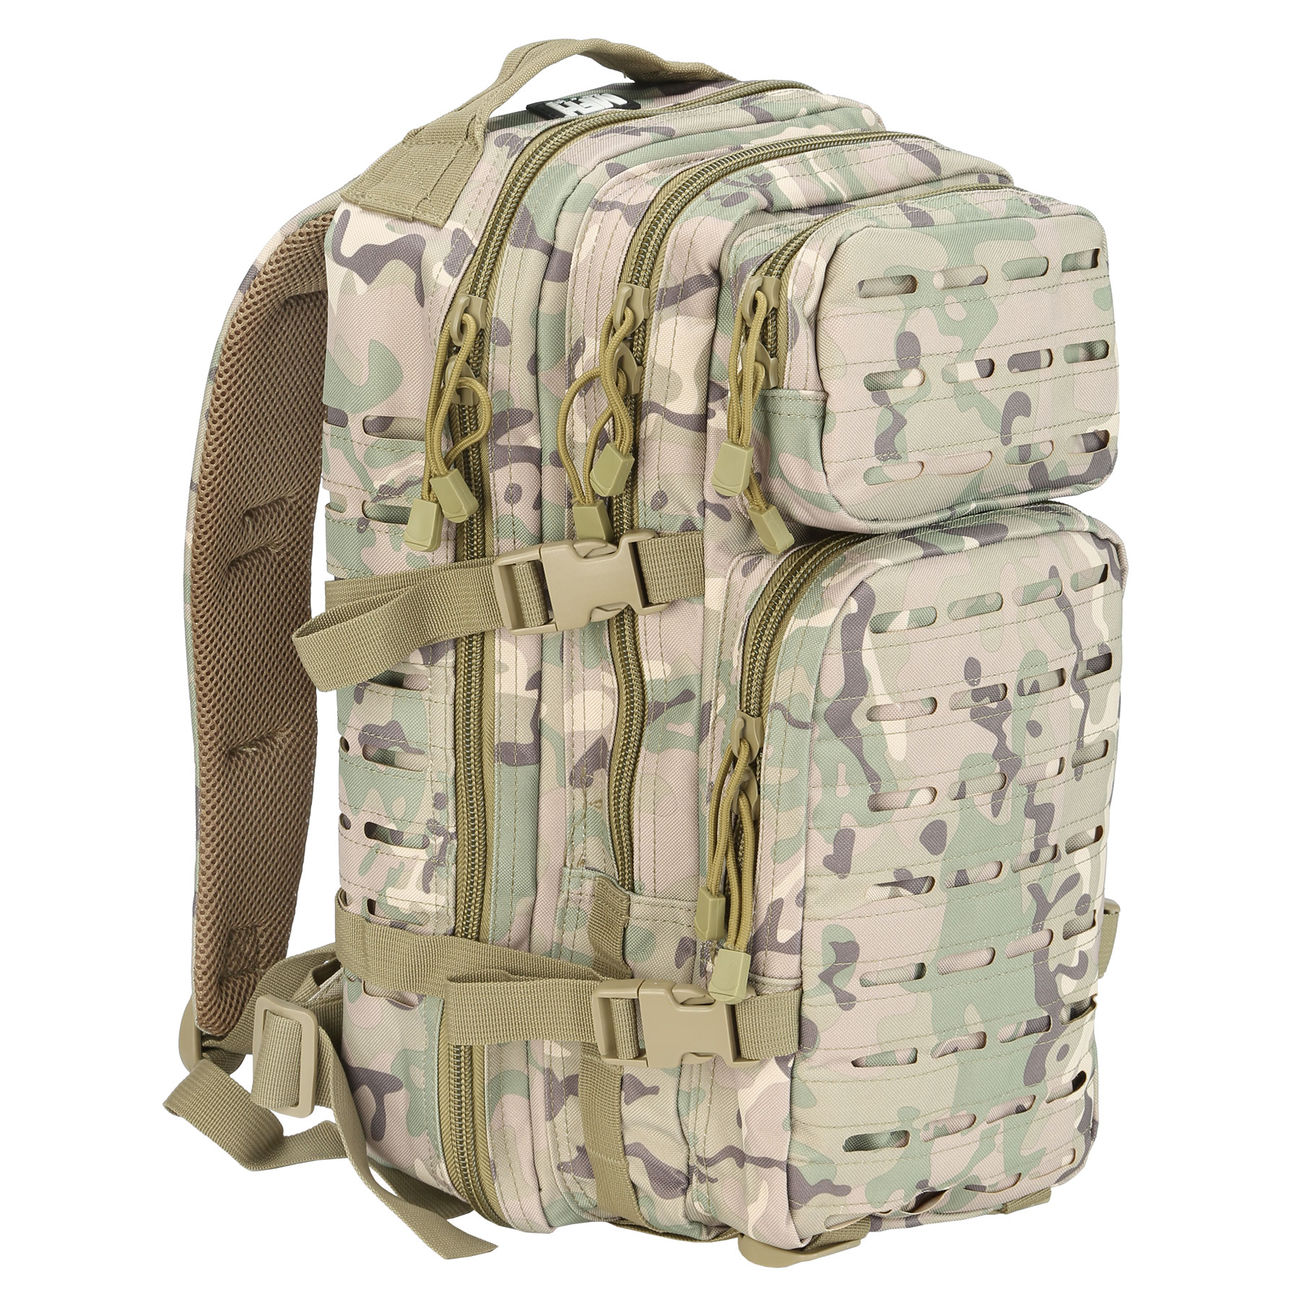 MFH Rucksack US Assault I Laser 30L operation-camo 0